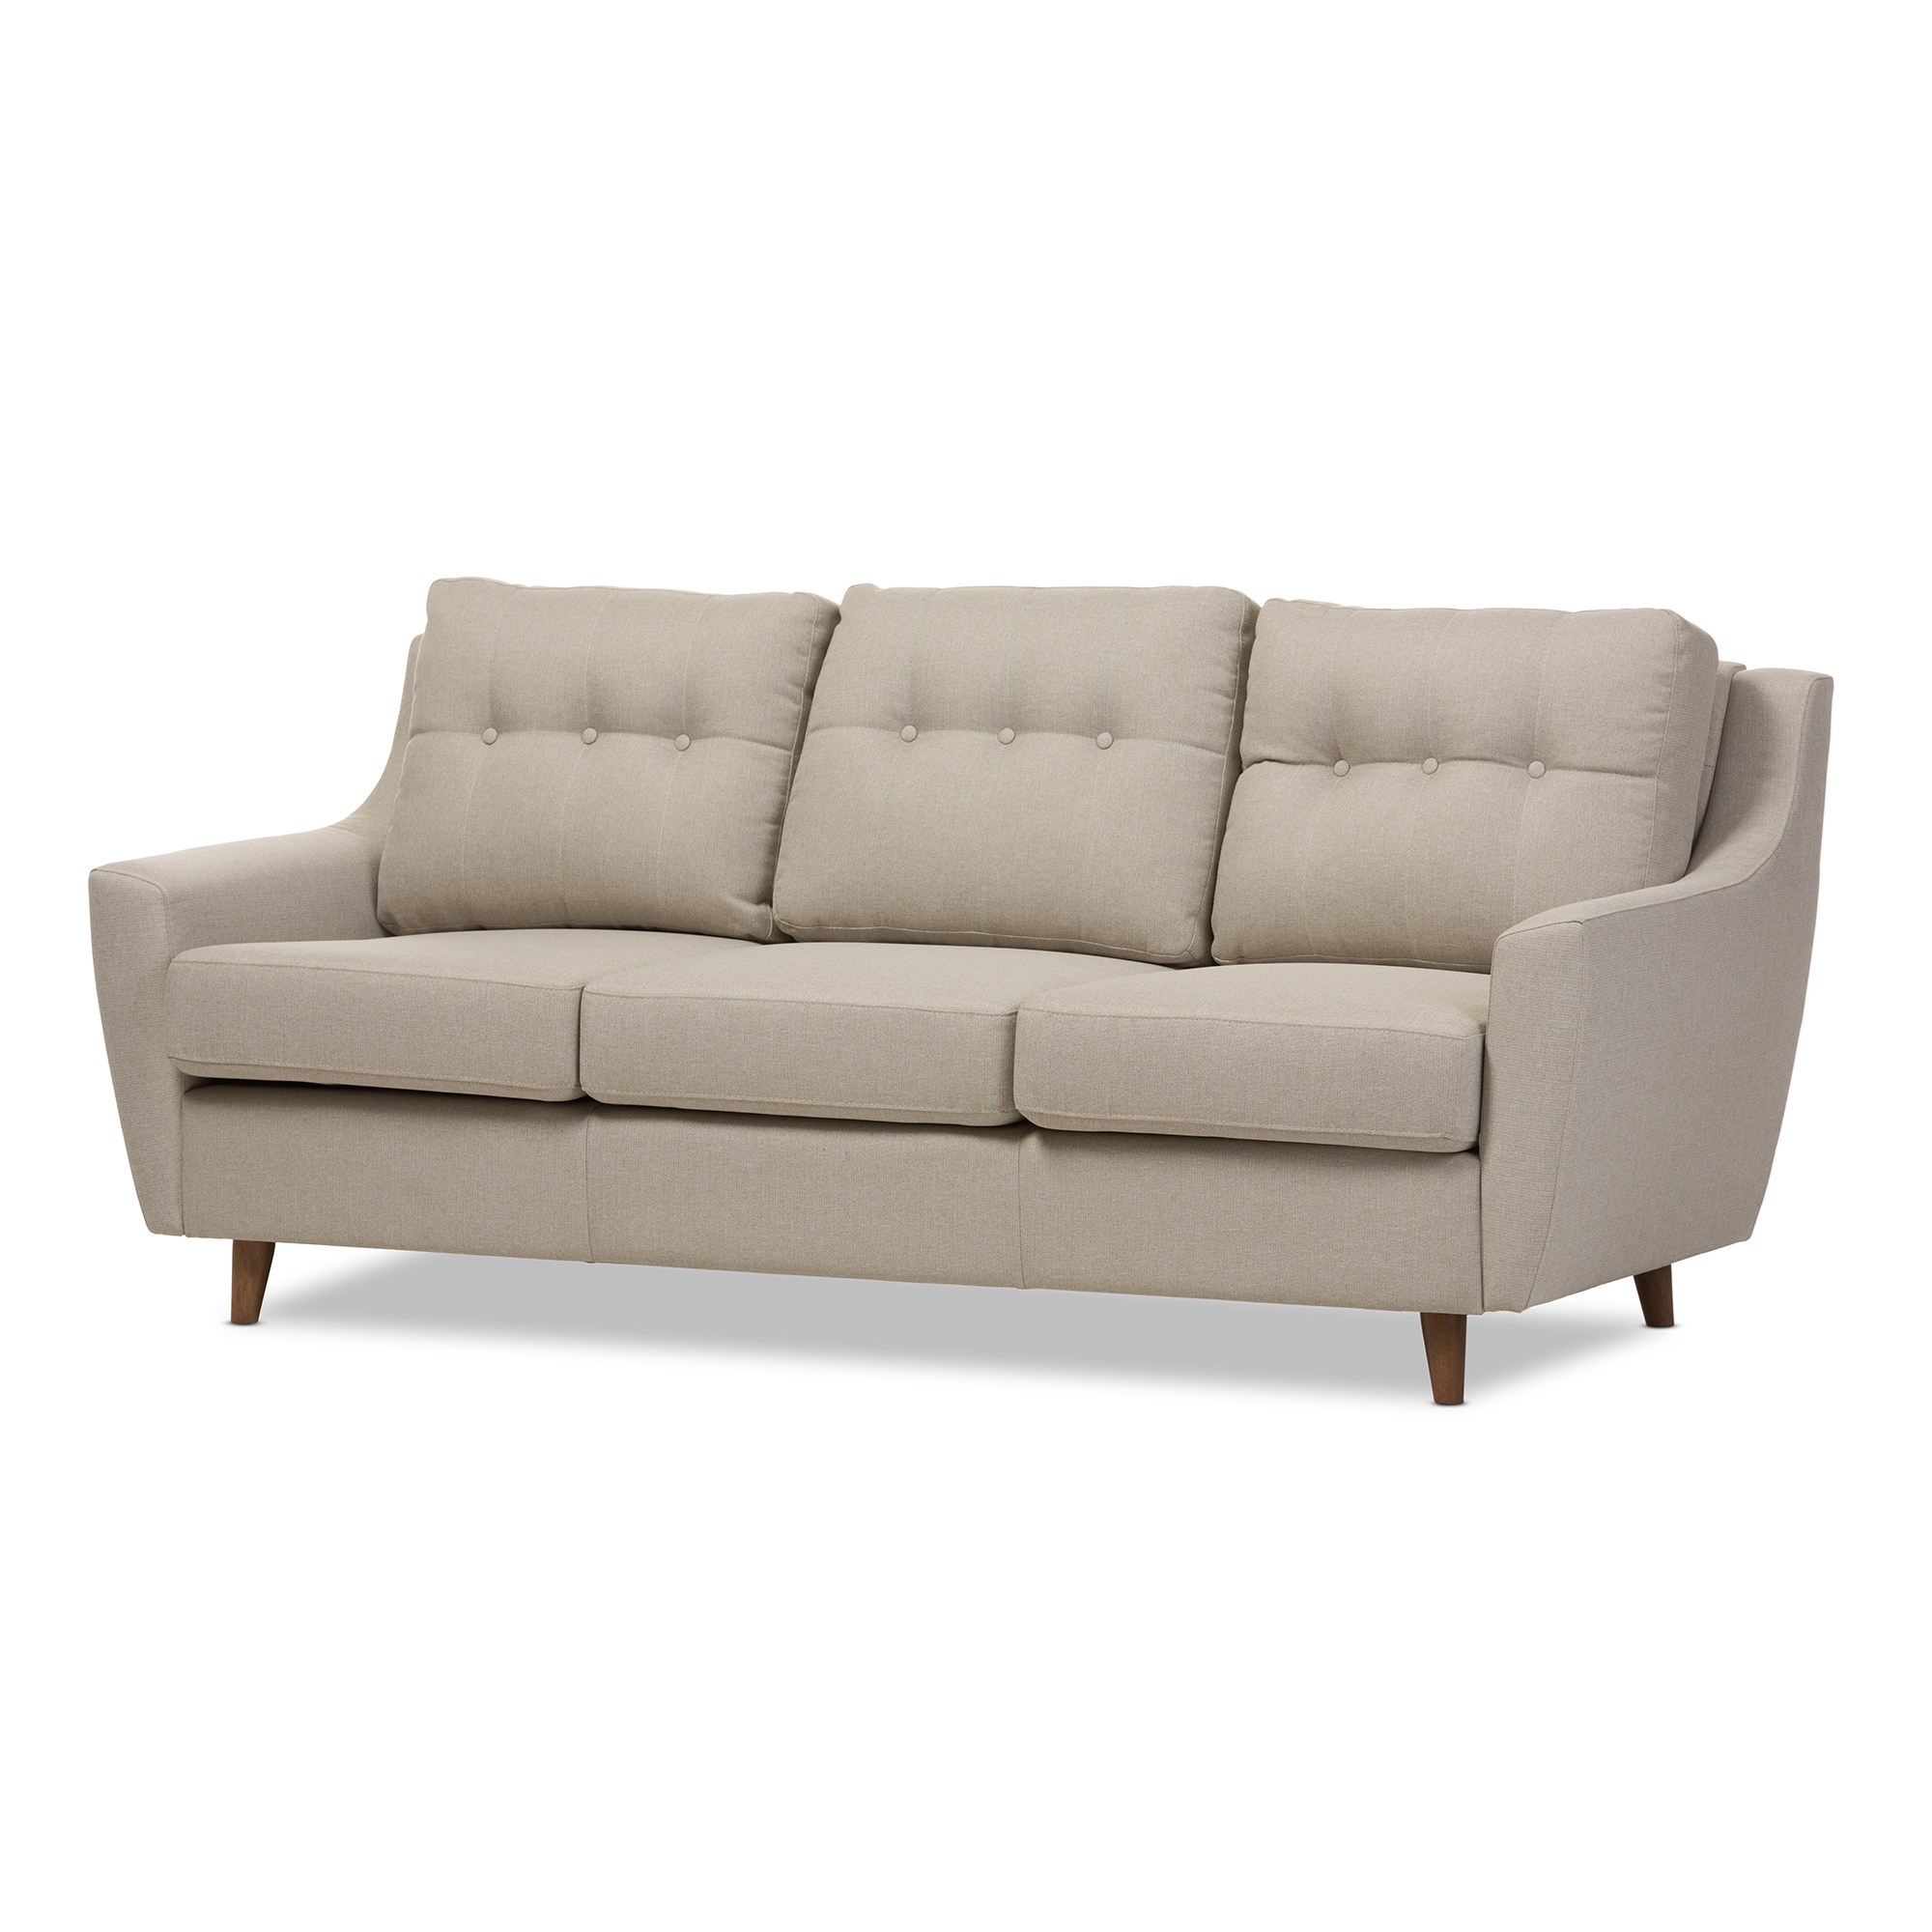 Baxton Studio Mckenzie Mid Century Modern Light Beige Fabric Upholstered  Tufted 3 Seater Sofa